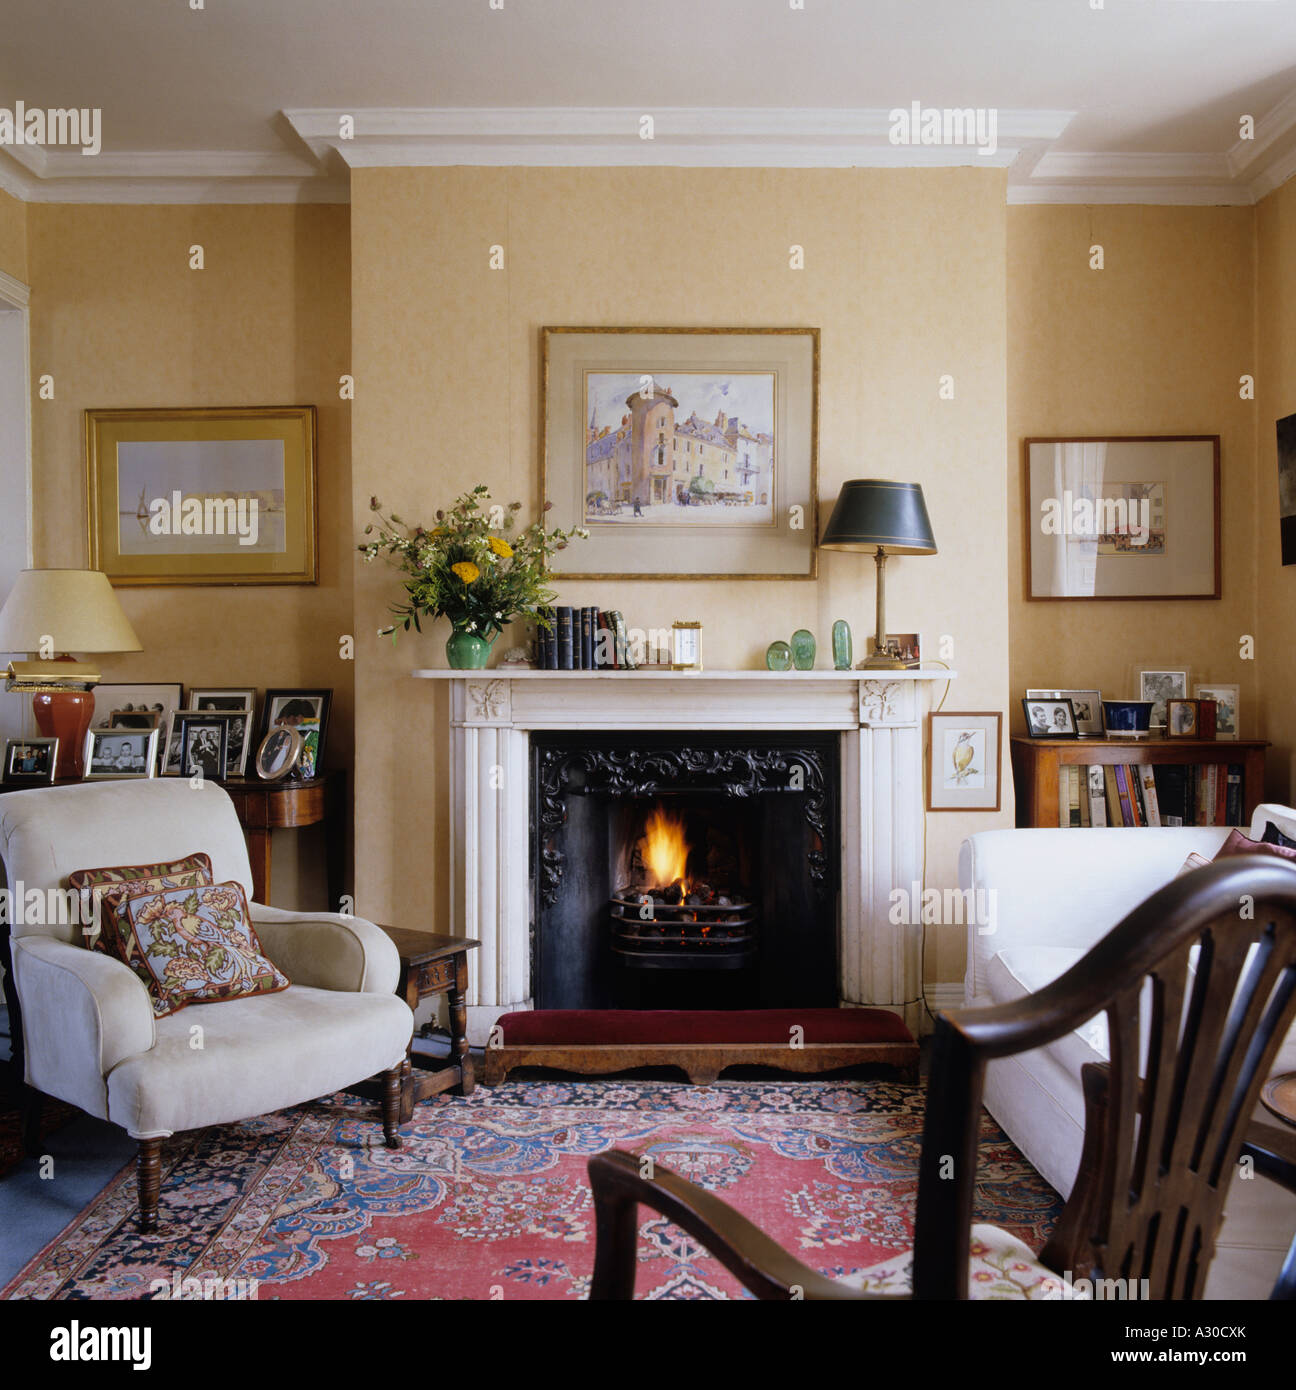 English Country Style Living Room With Mantel Piece, Arm Chair And Rug